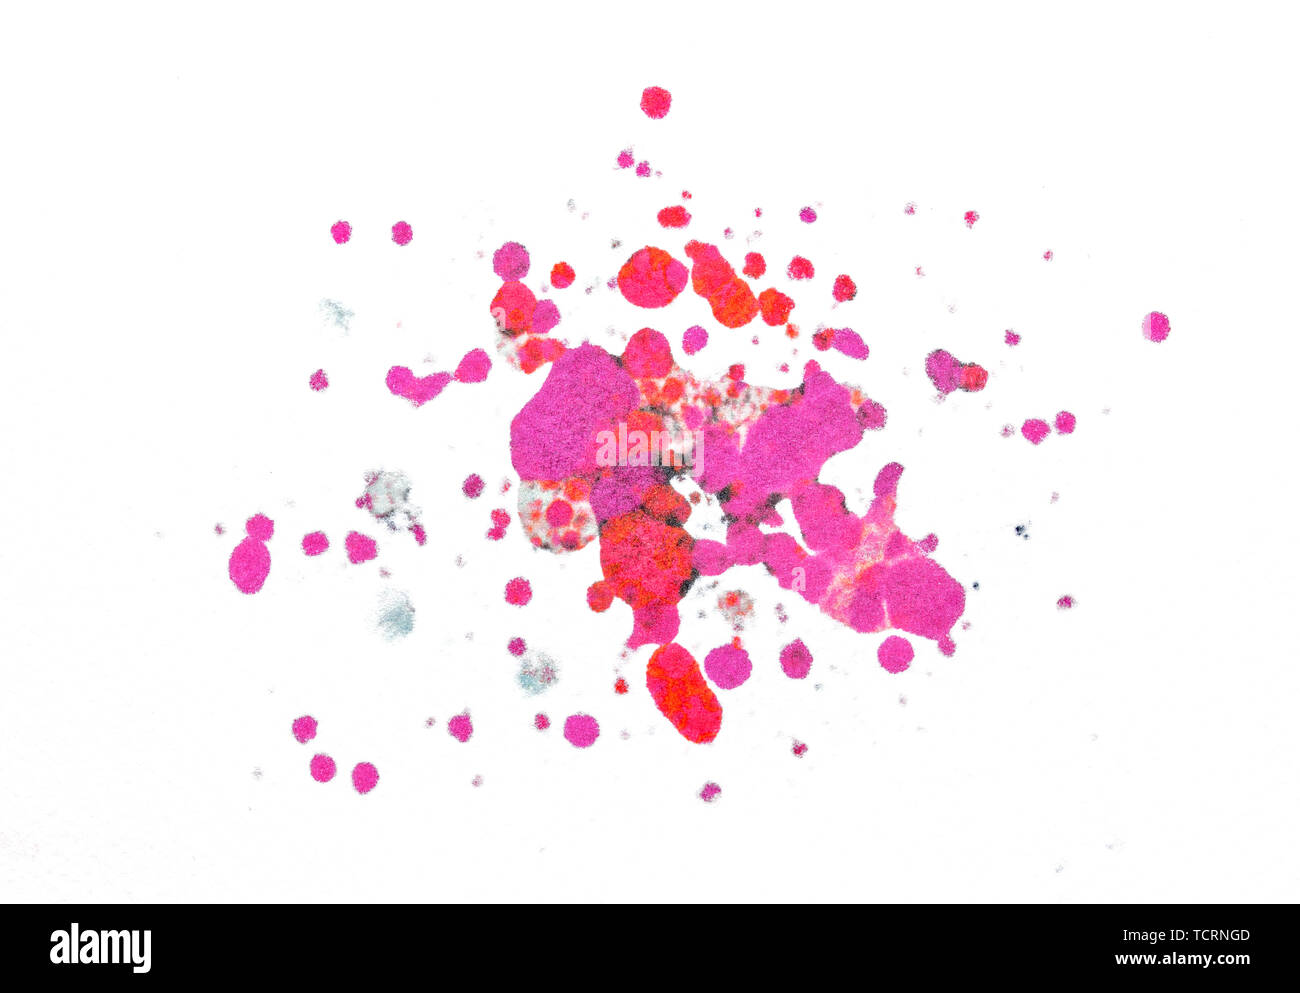 Splatter paint isolated on white background made with punchy magenta and red colours - Stock Image